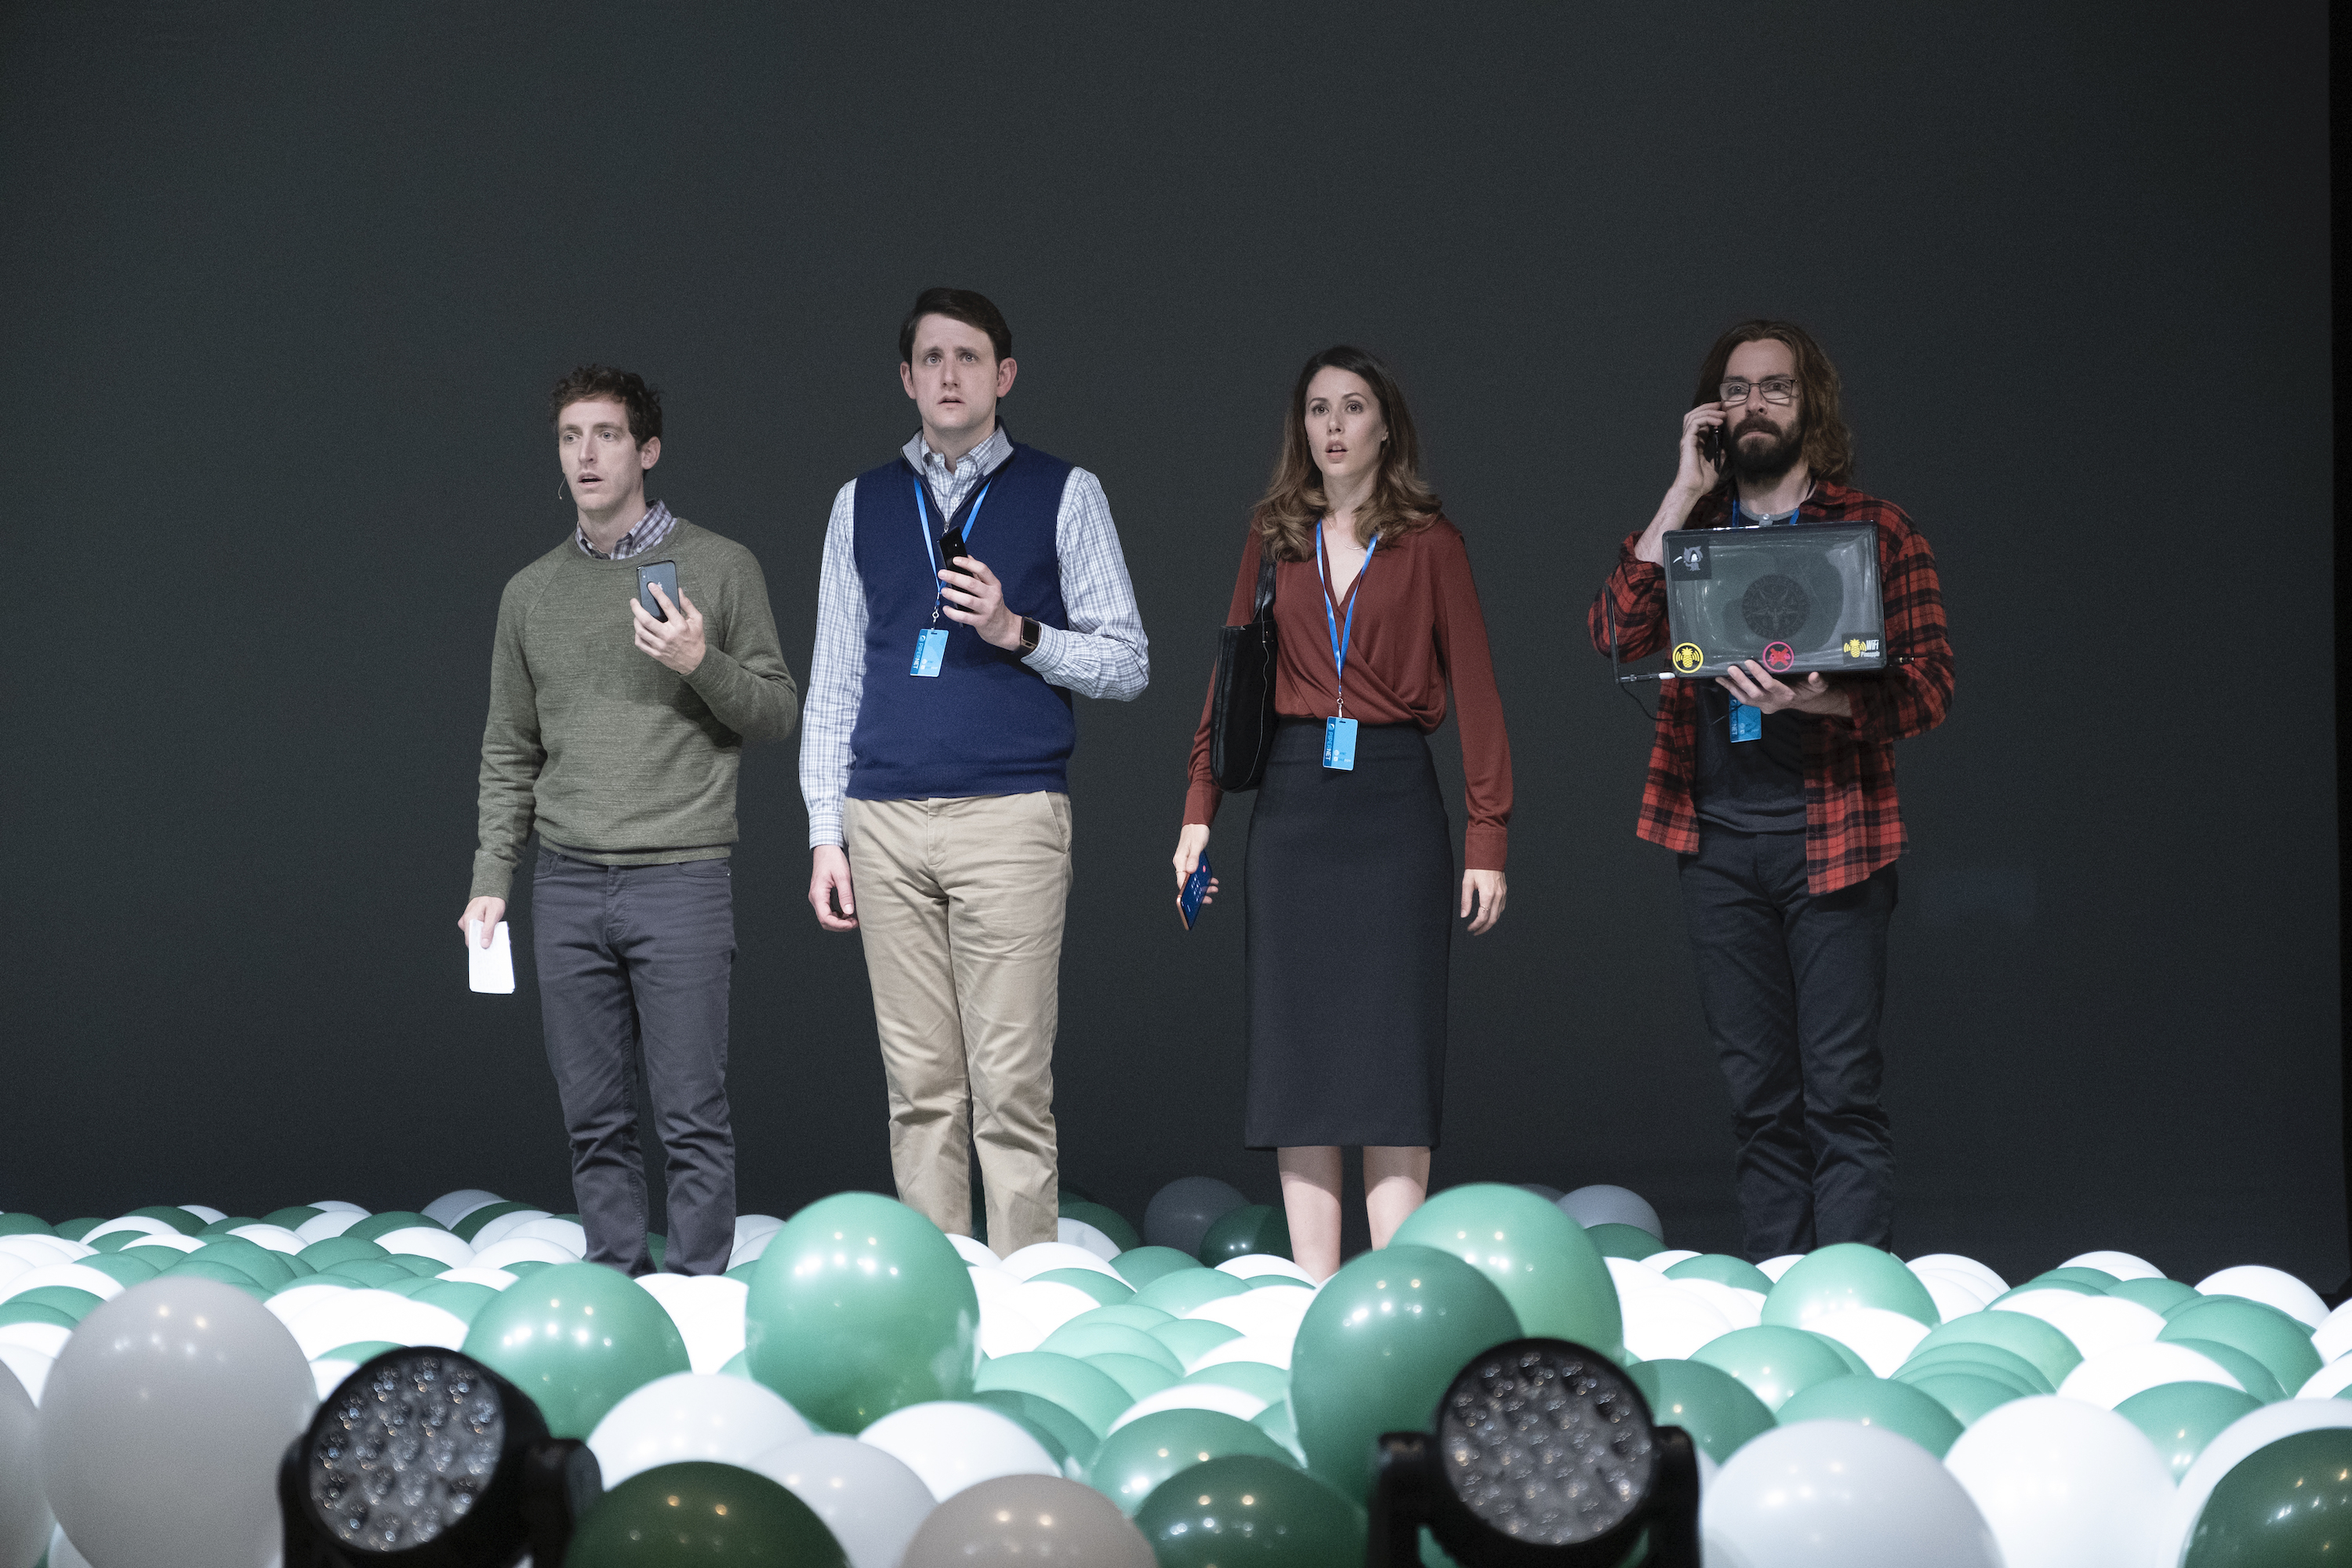 Silicon Valley Season 6 Episode 7